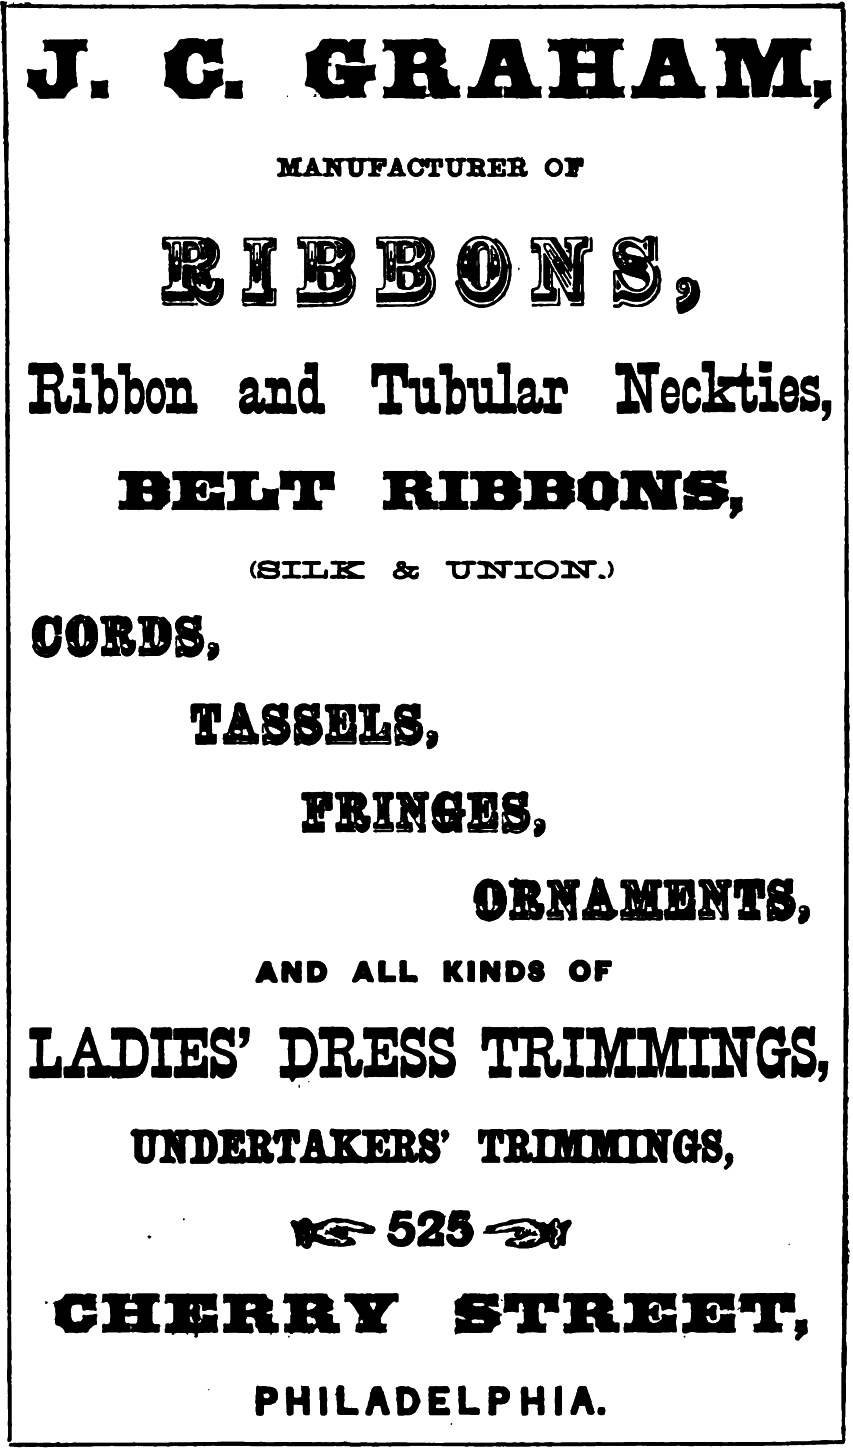 JC Graham, ribbons, etc 525 Chy Freedley 1867 274 - Copy